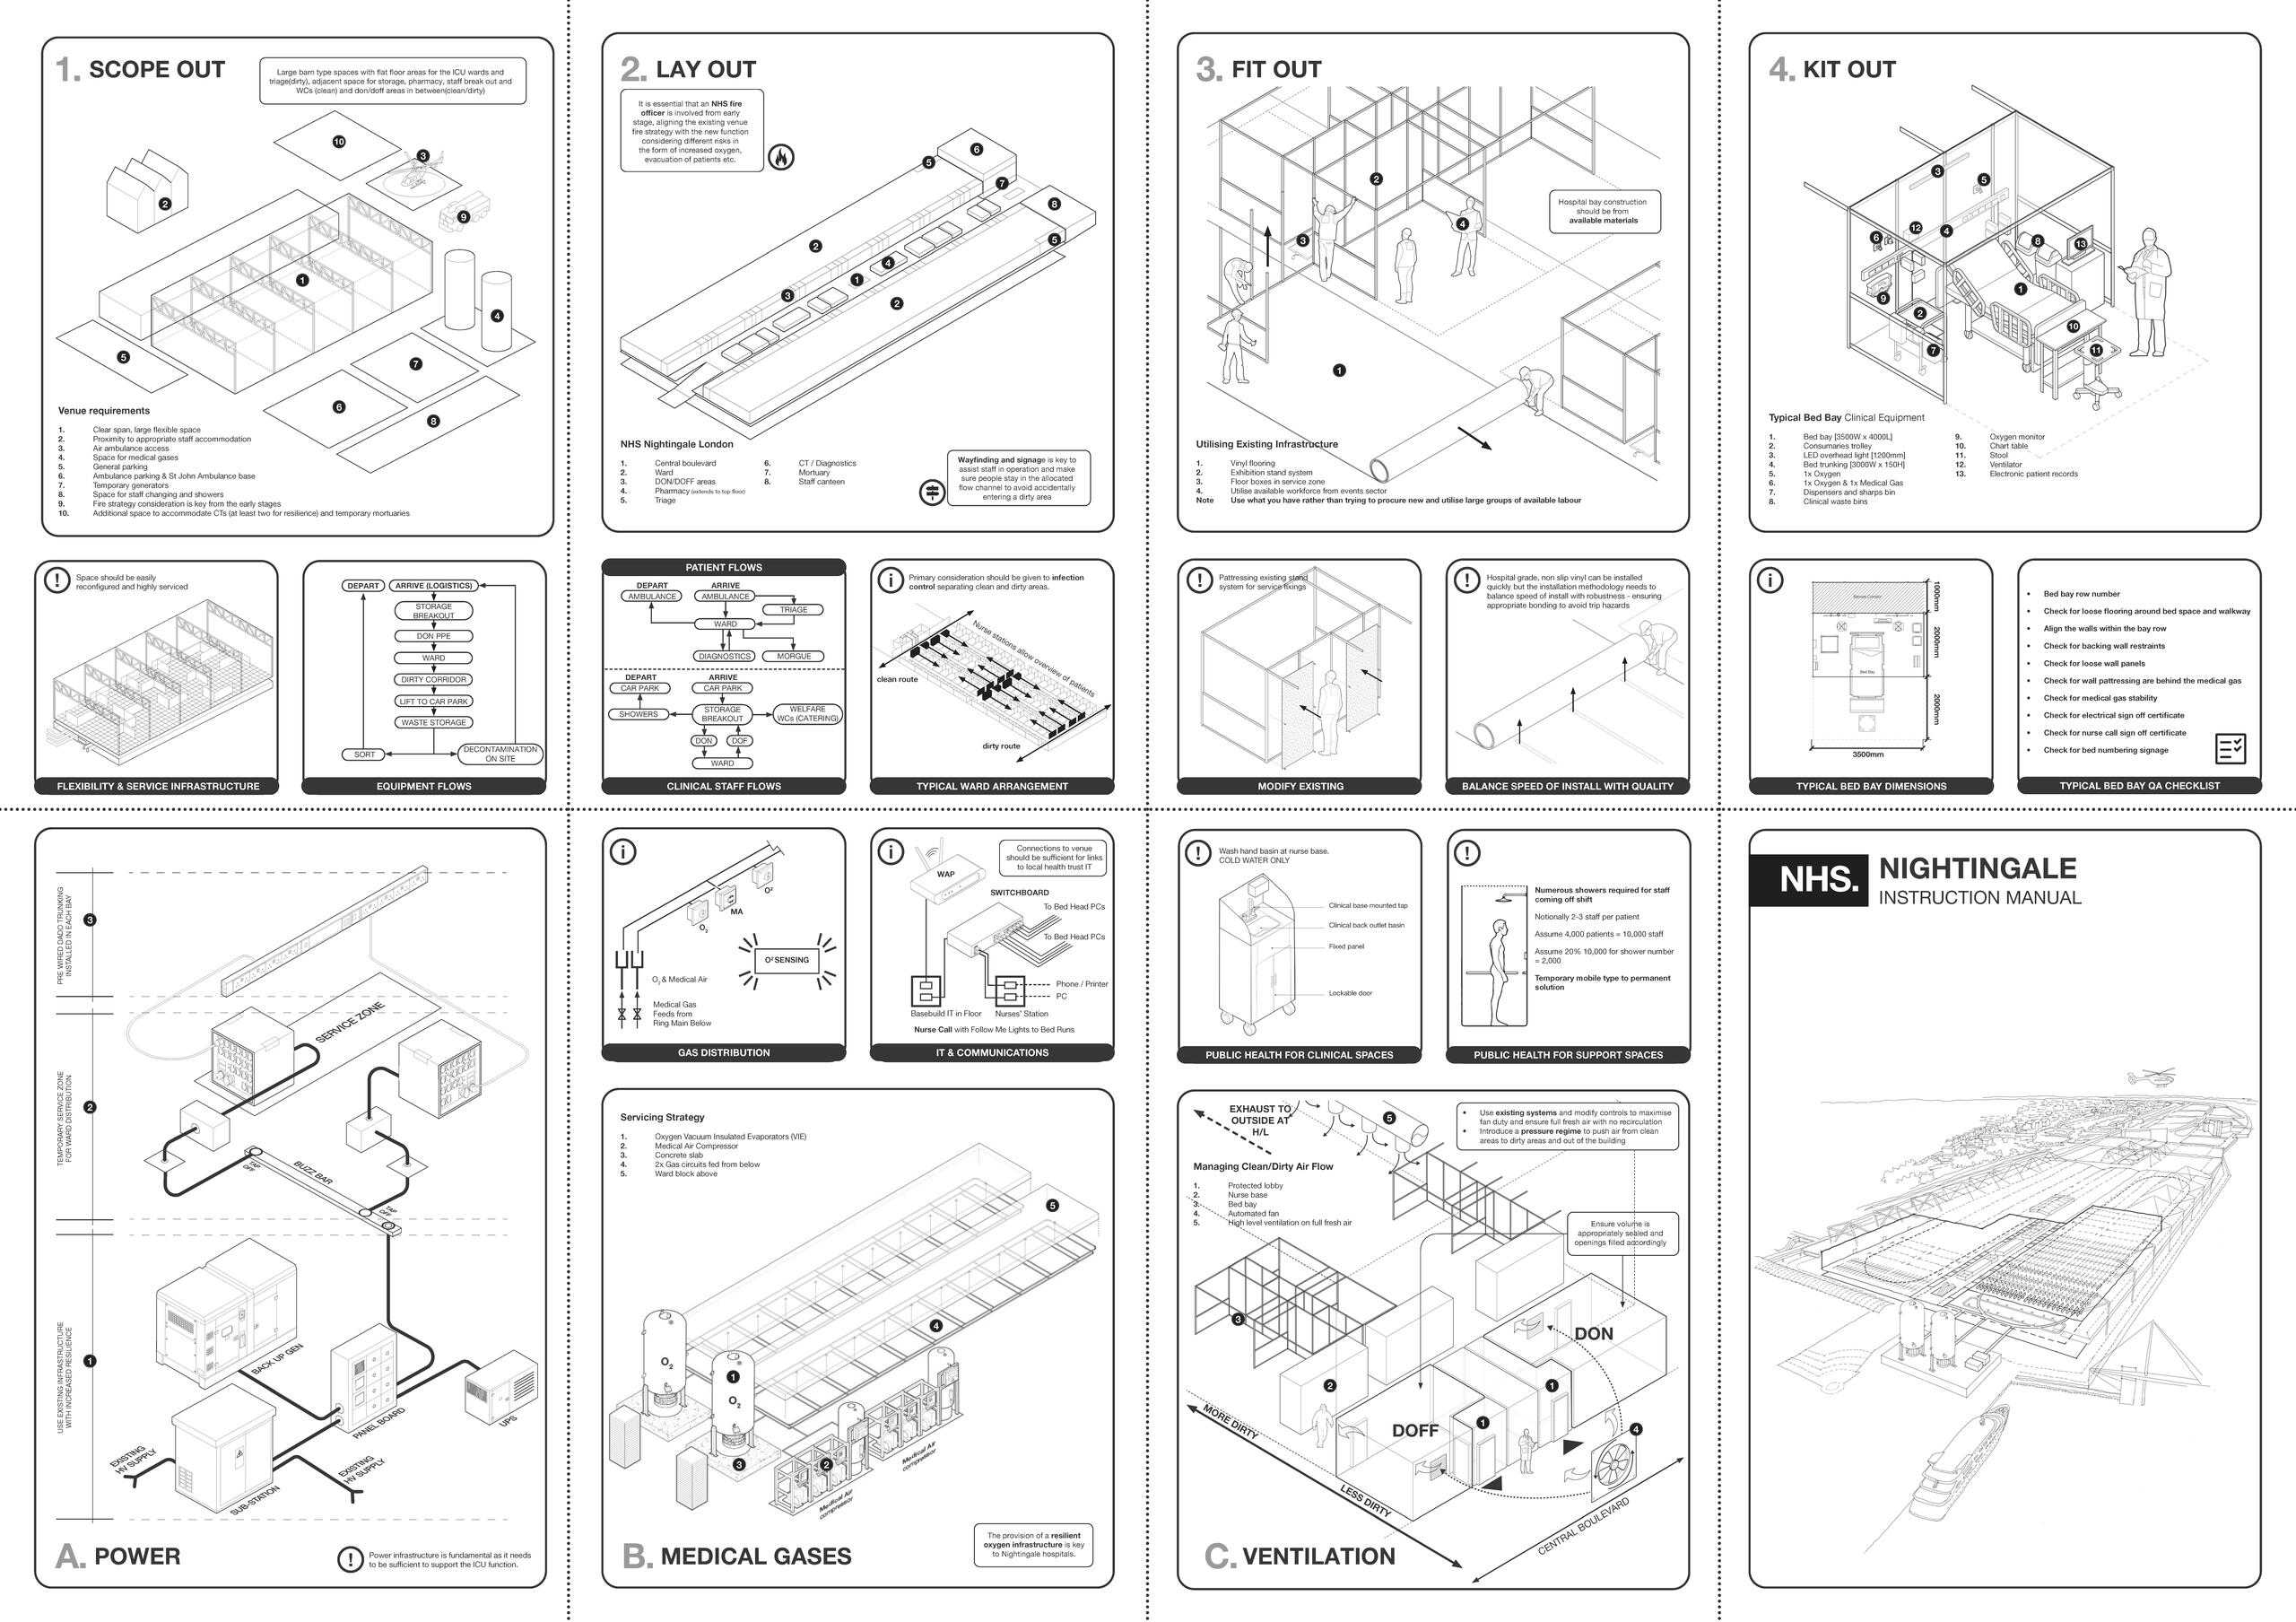 diagrams and text explaining how to make design elements to quickly convert a conference centre to a hospital